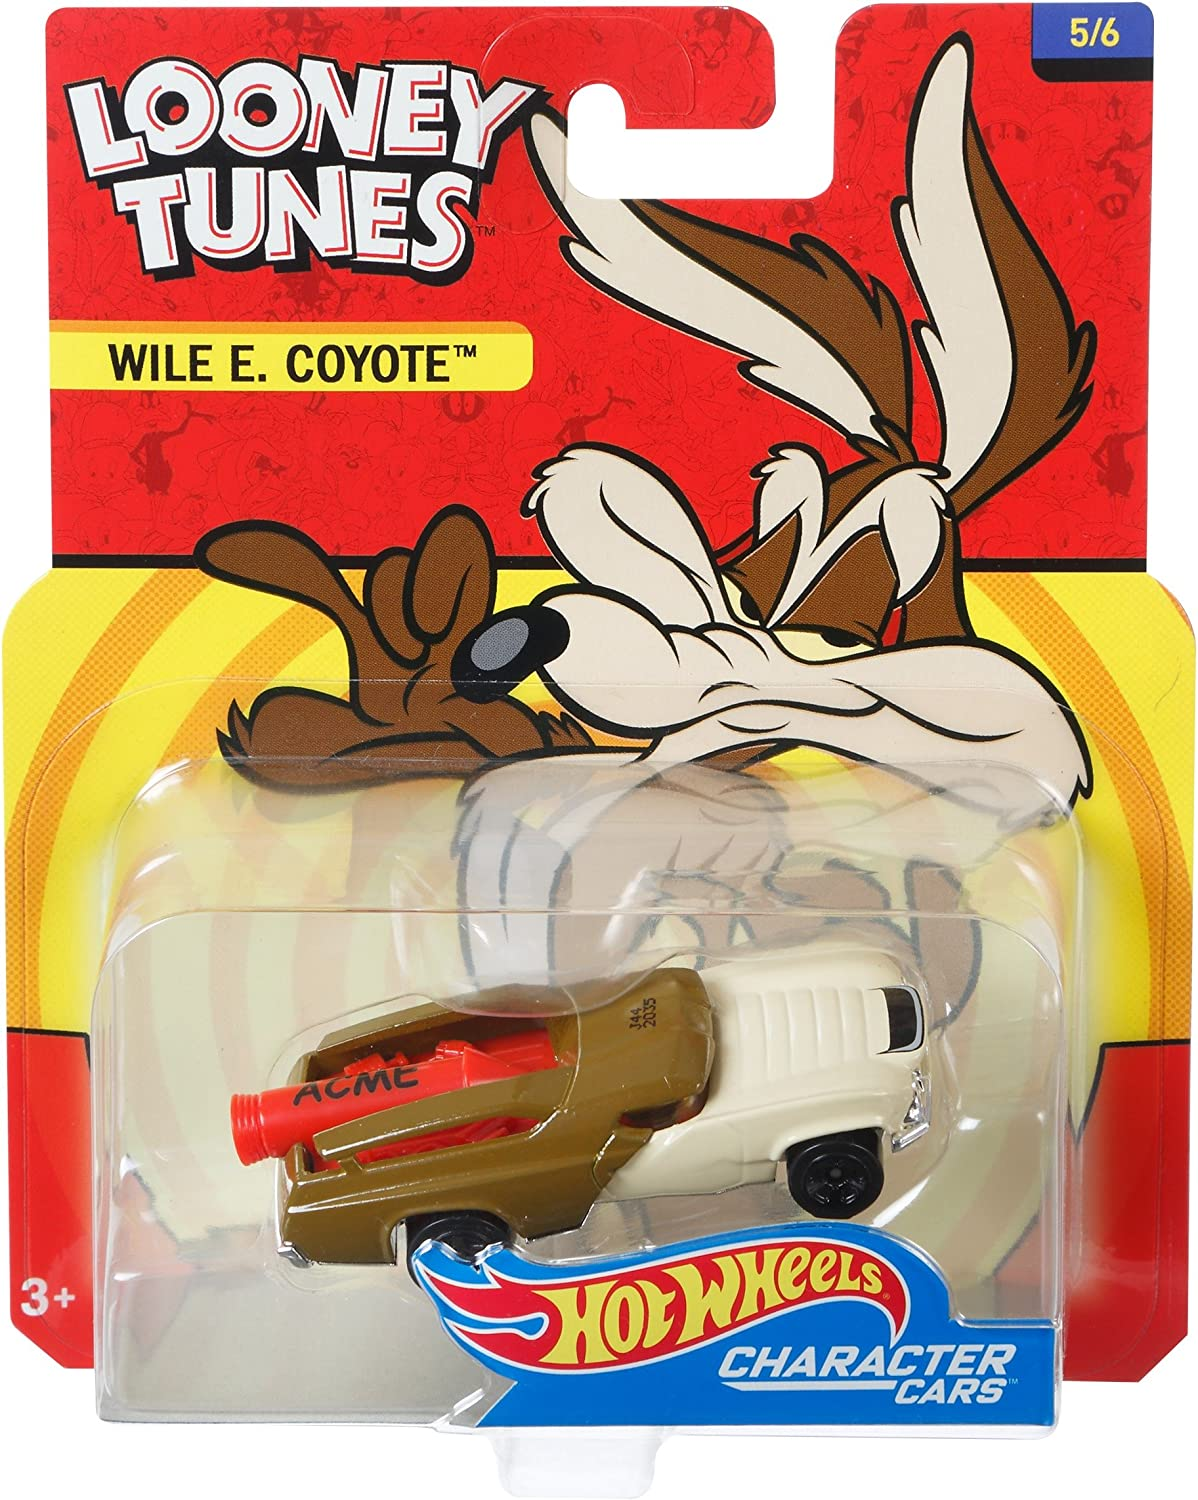 Looney Tunes Car Set 6 Autos Bugs Bunny Road Runner 1:64 Hot Wheels DMH73